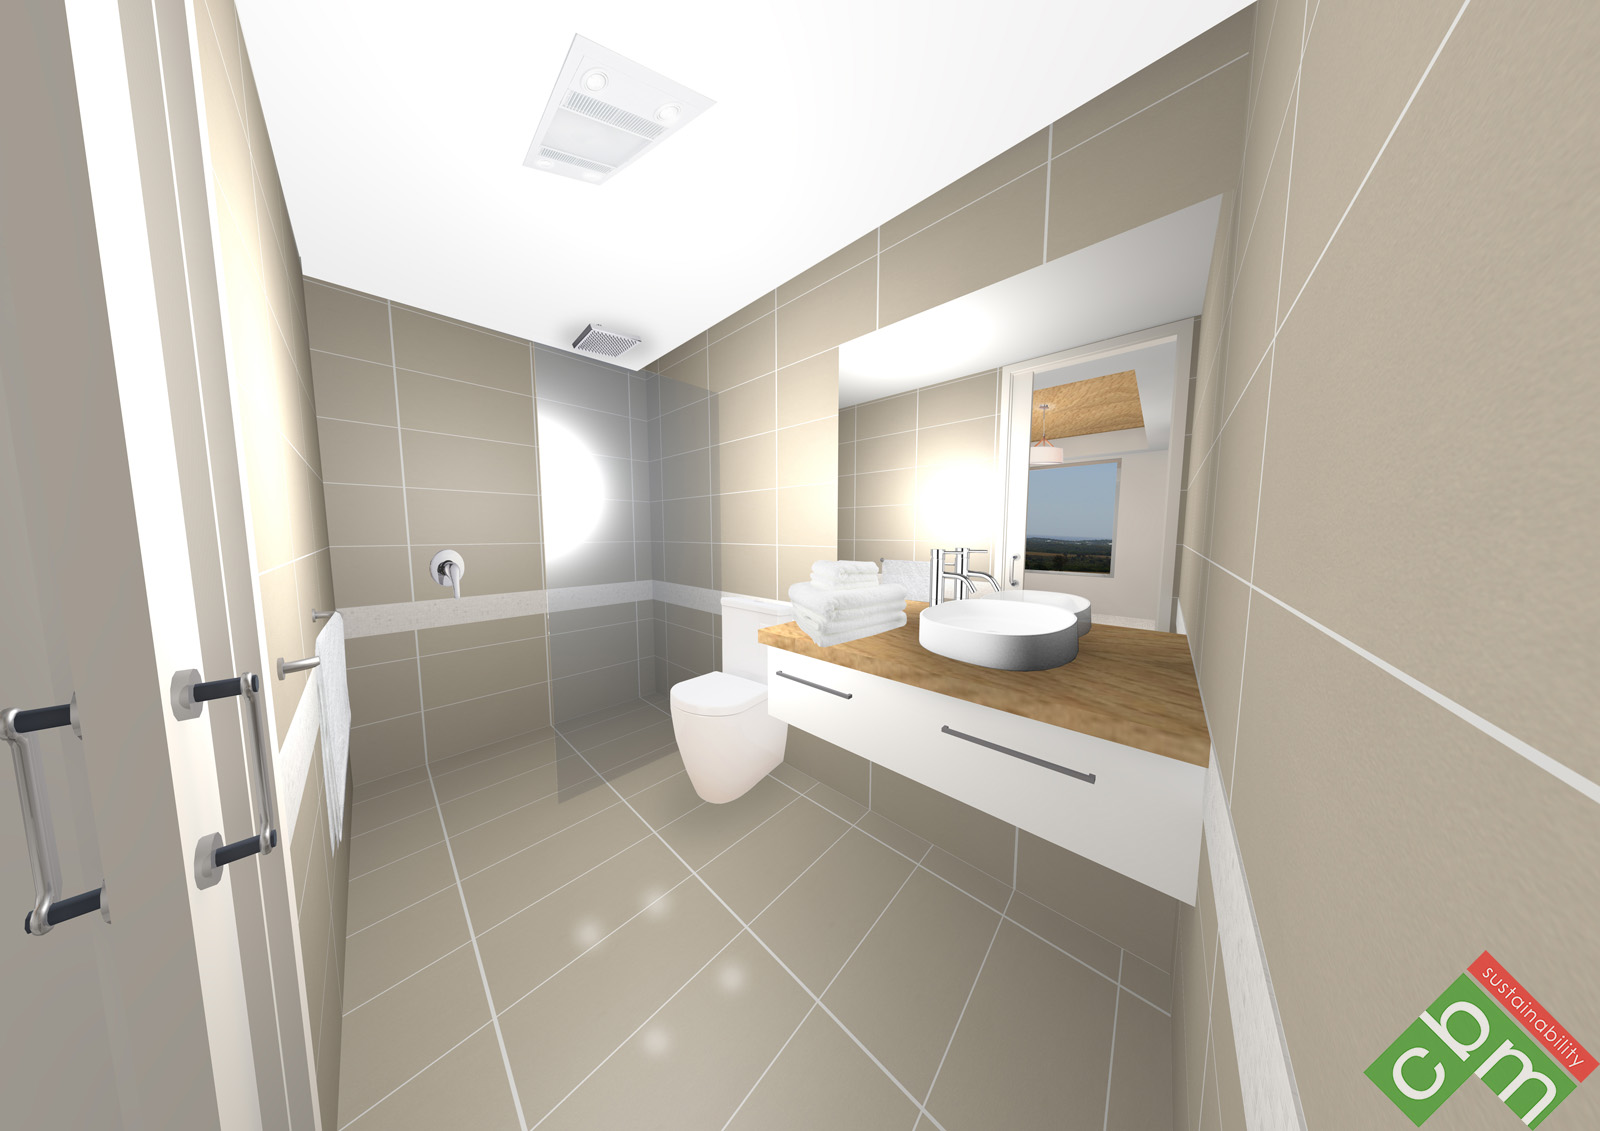 T1 Apartment Type 1 - Bathroom.JPG